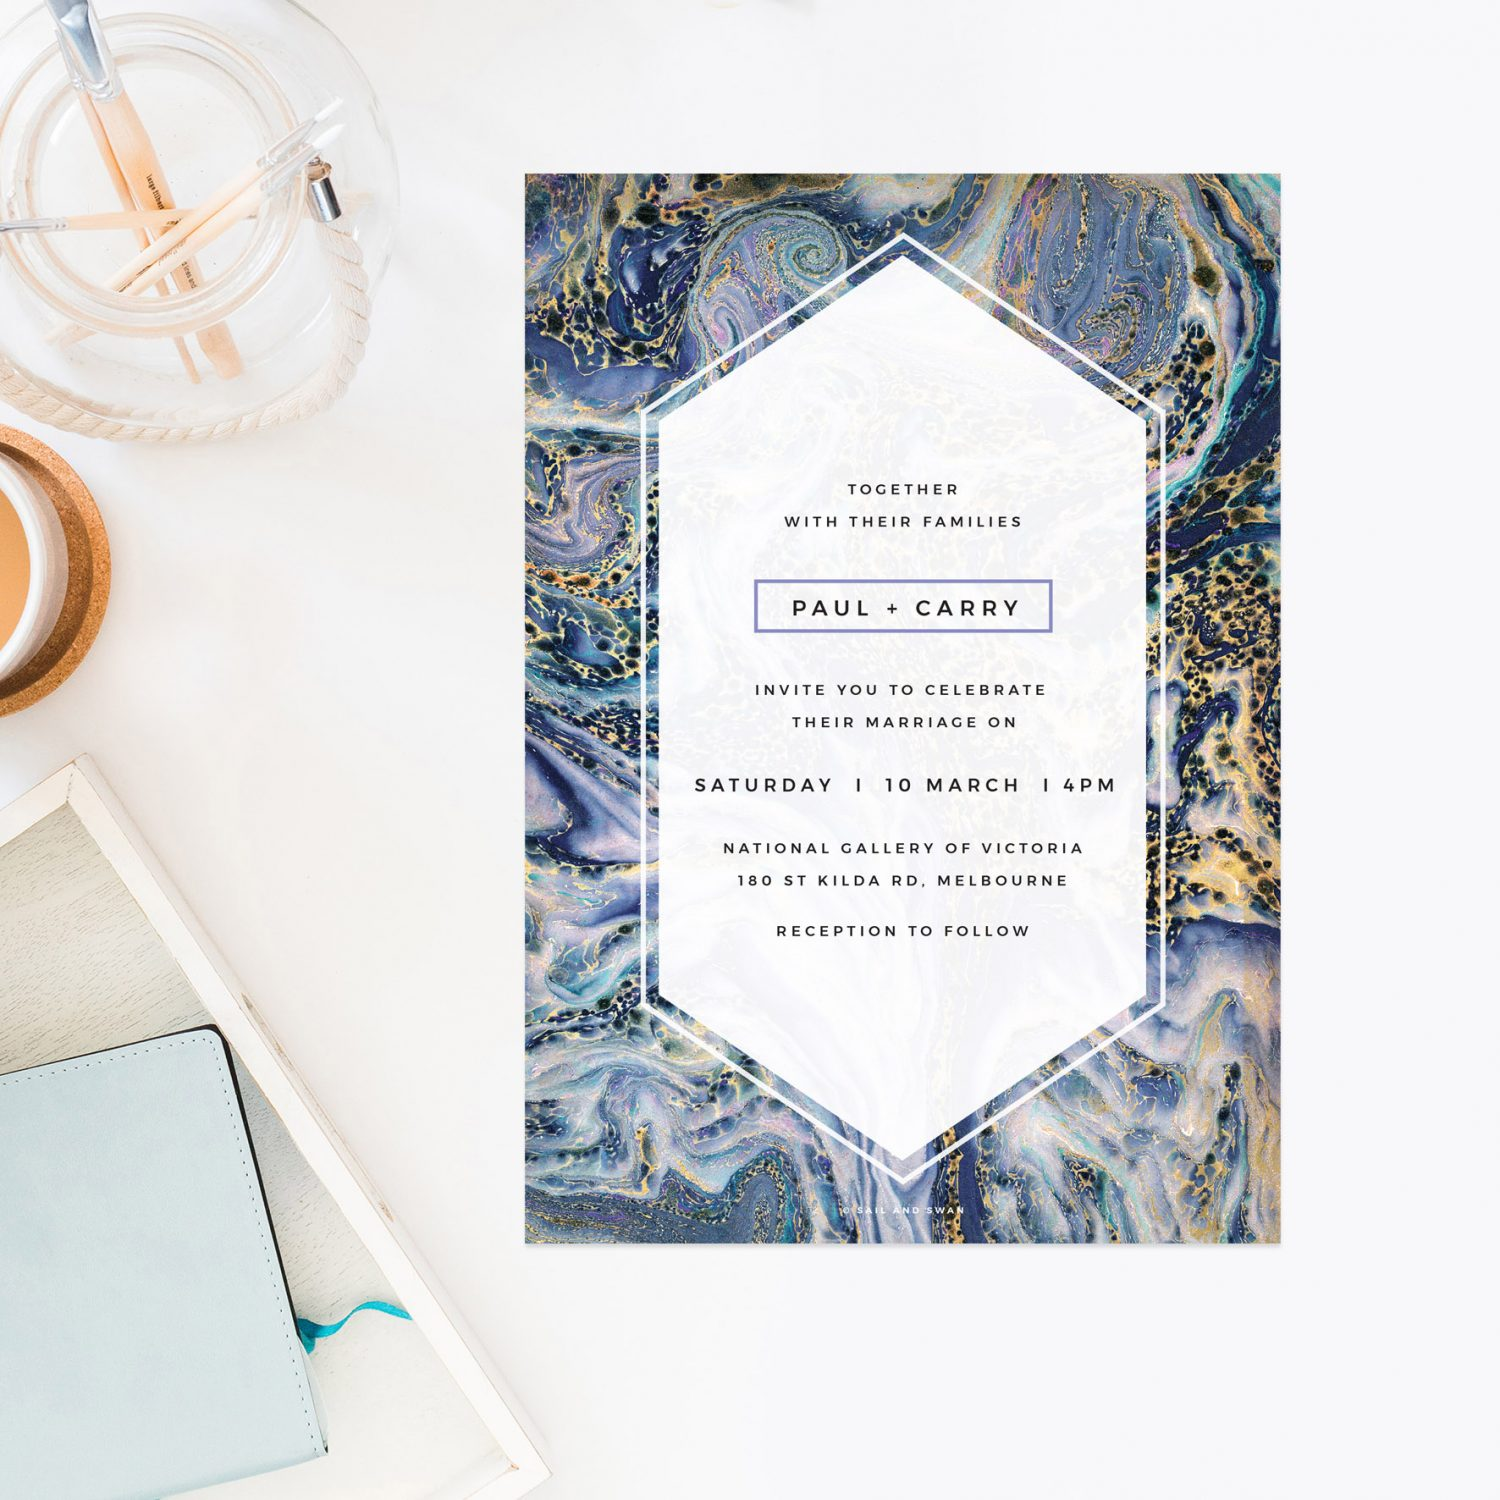 Blue Purple and Gold Marbled Wedding Invitations - Midnight Marble